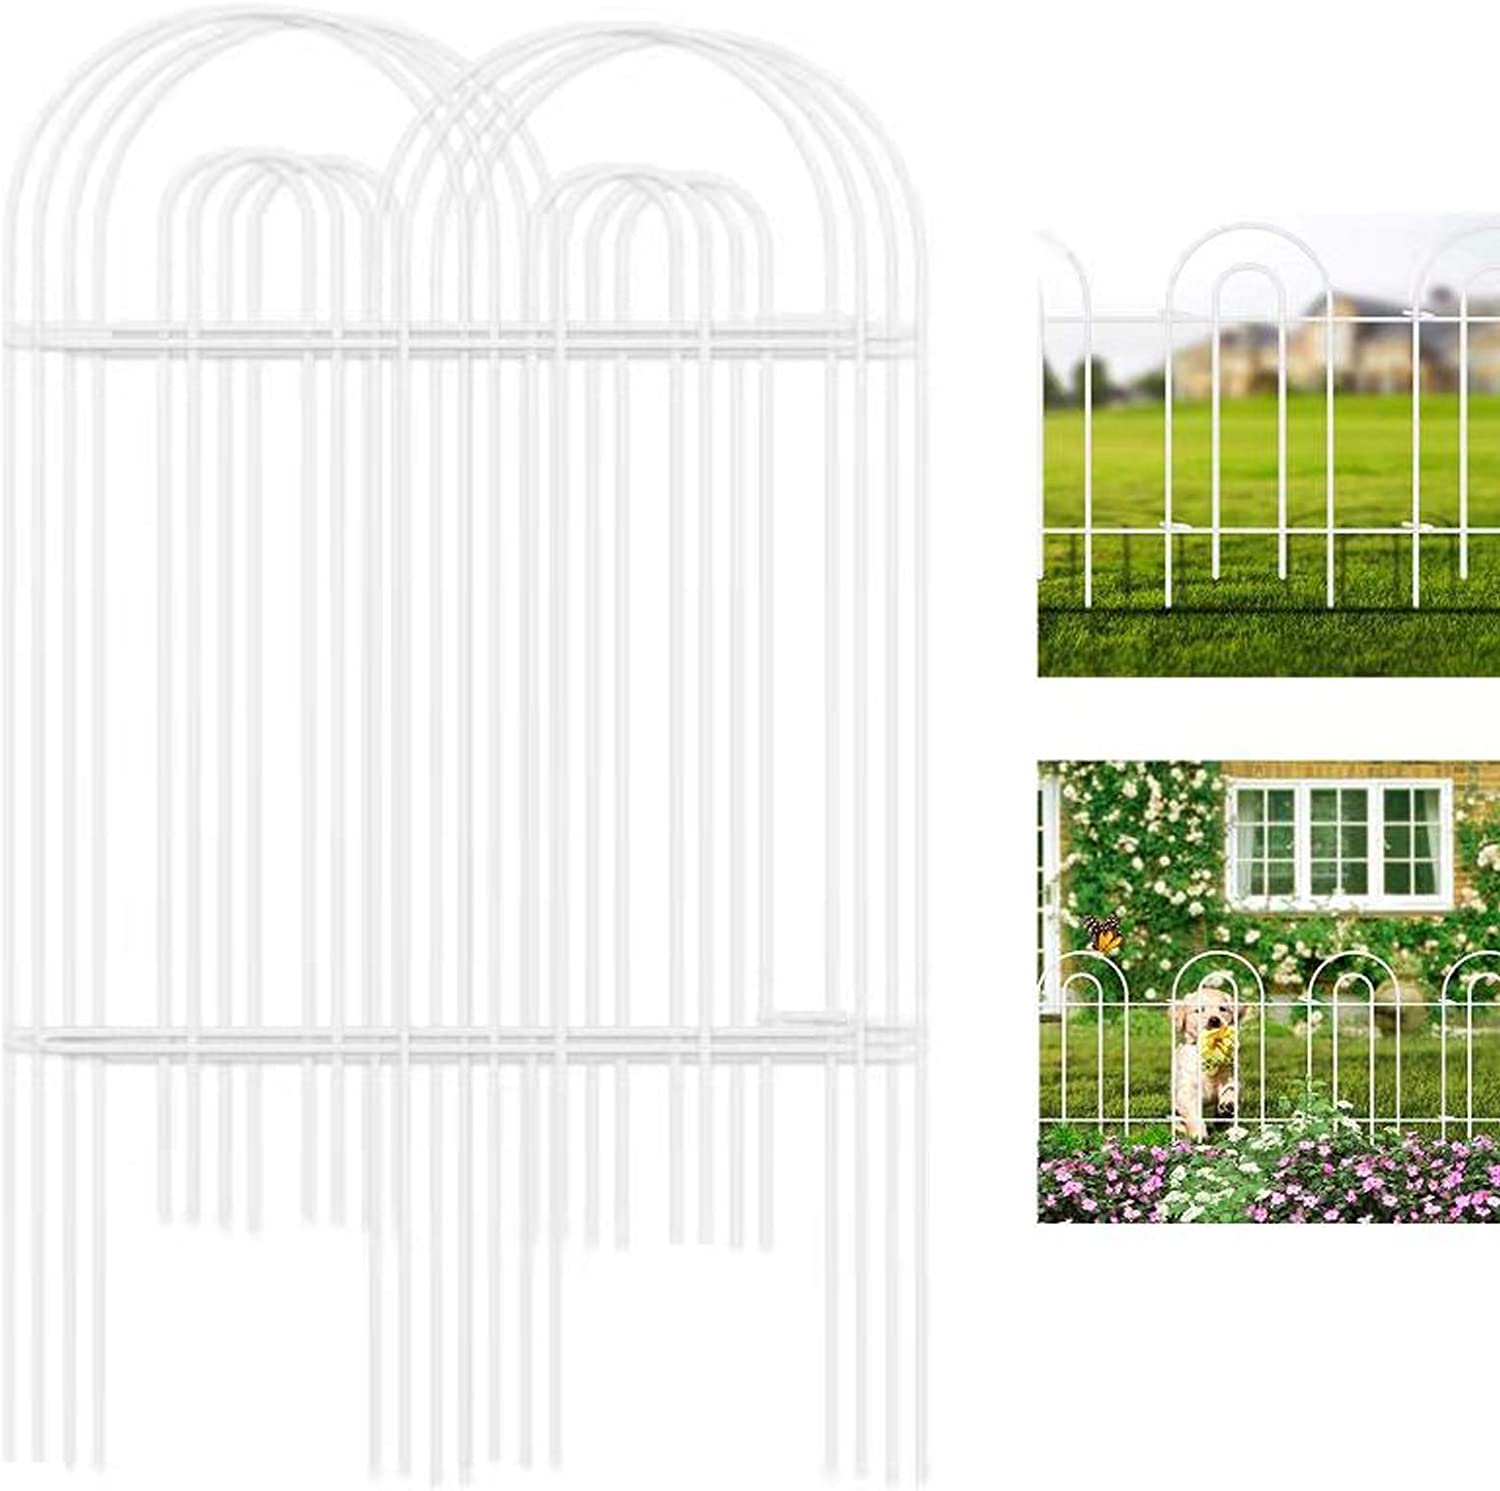 Amagabeli Decorative Garden Fence 32inx20ft Rustproof White Iron Landscape Wire Folding Fencing Ornamental Panel Border Edge Section Edging Patio Fences Flower Bed Animal Barrier Outdoor White